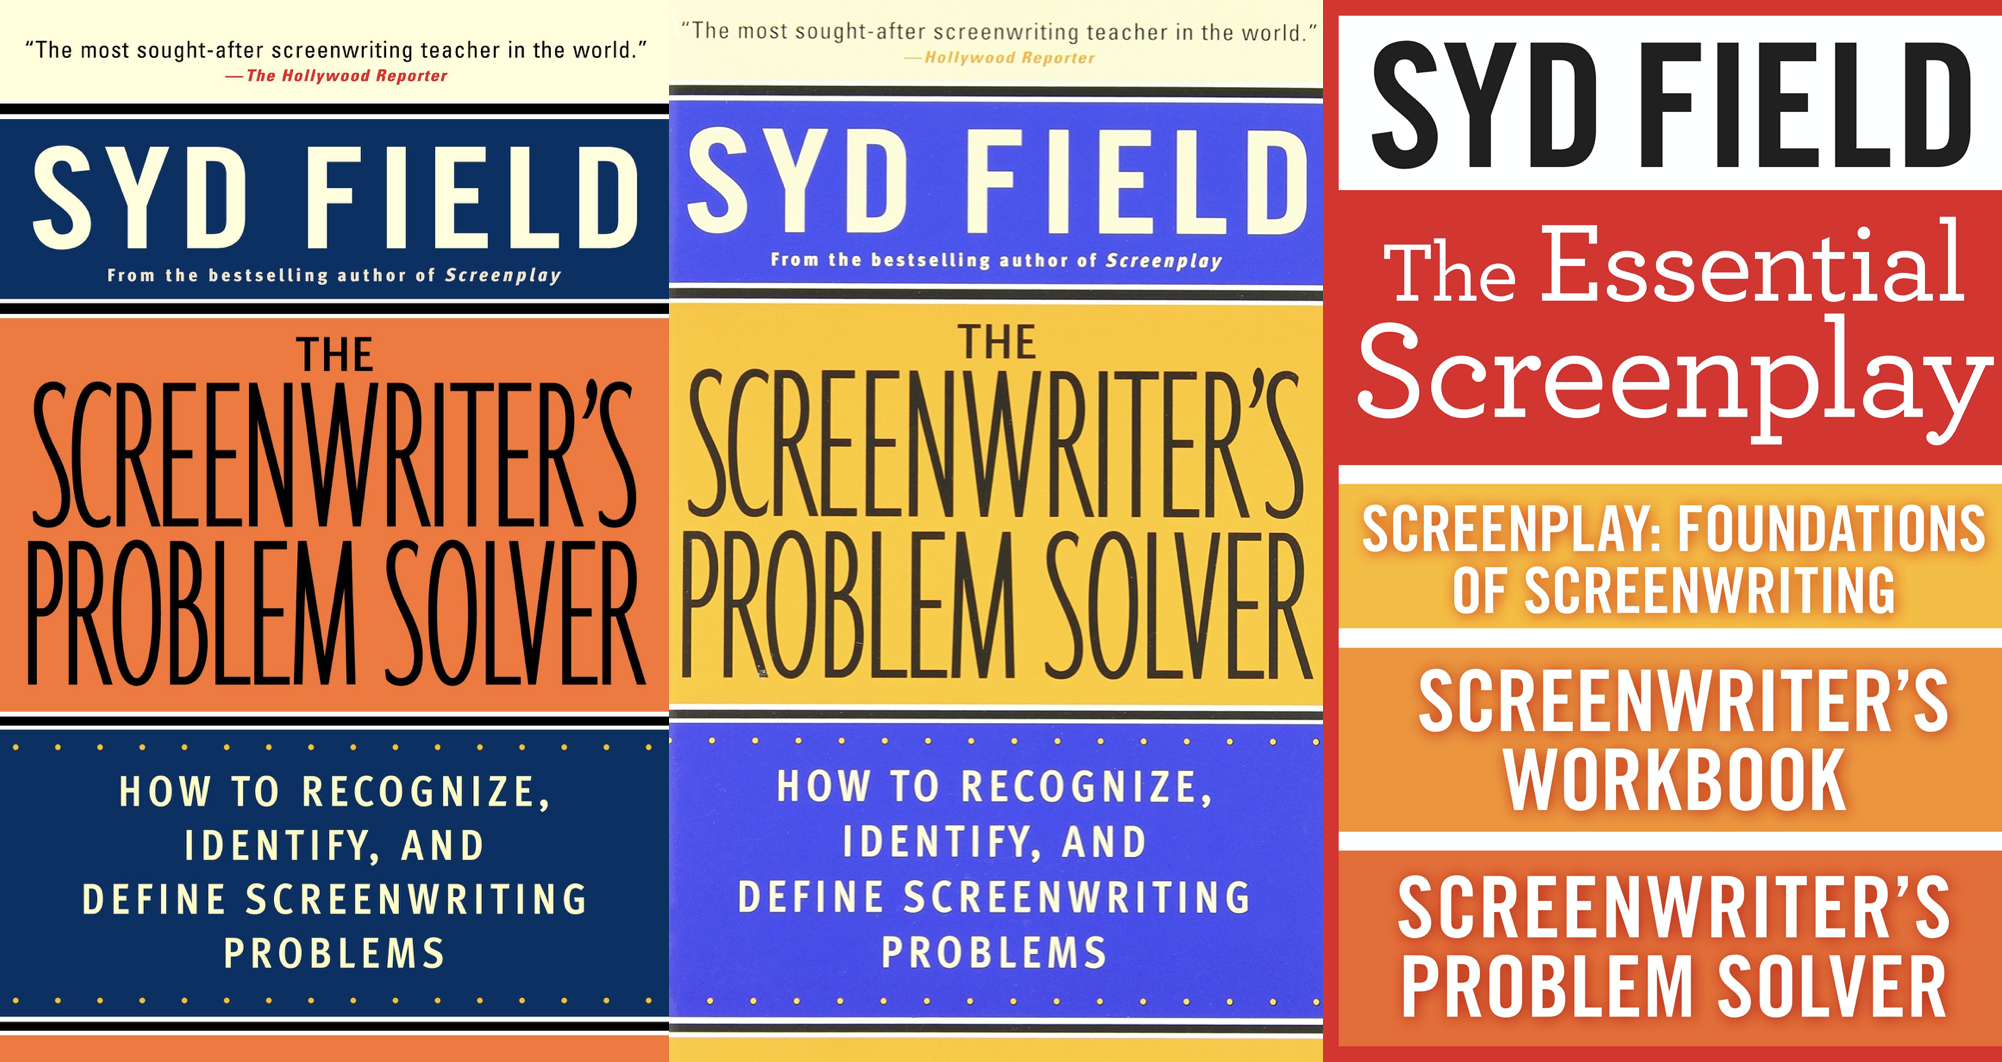 Syd Field's The Screenwriter's Problem Solver - thescriptblog.com